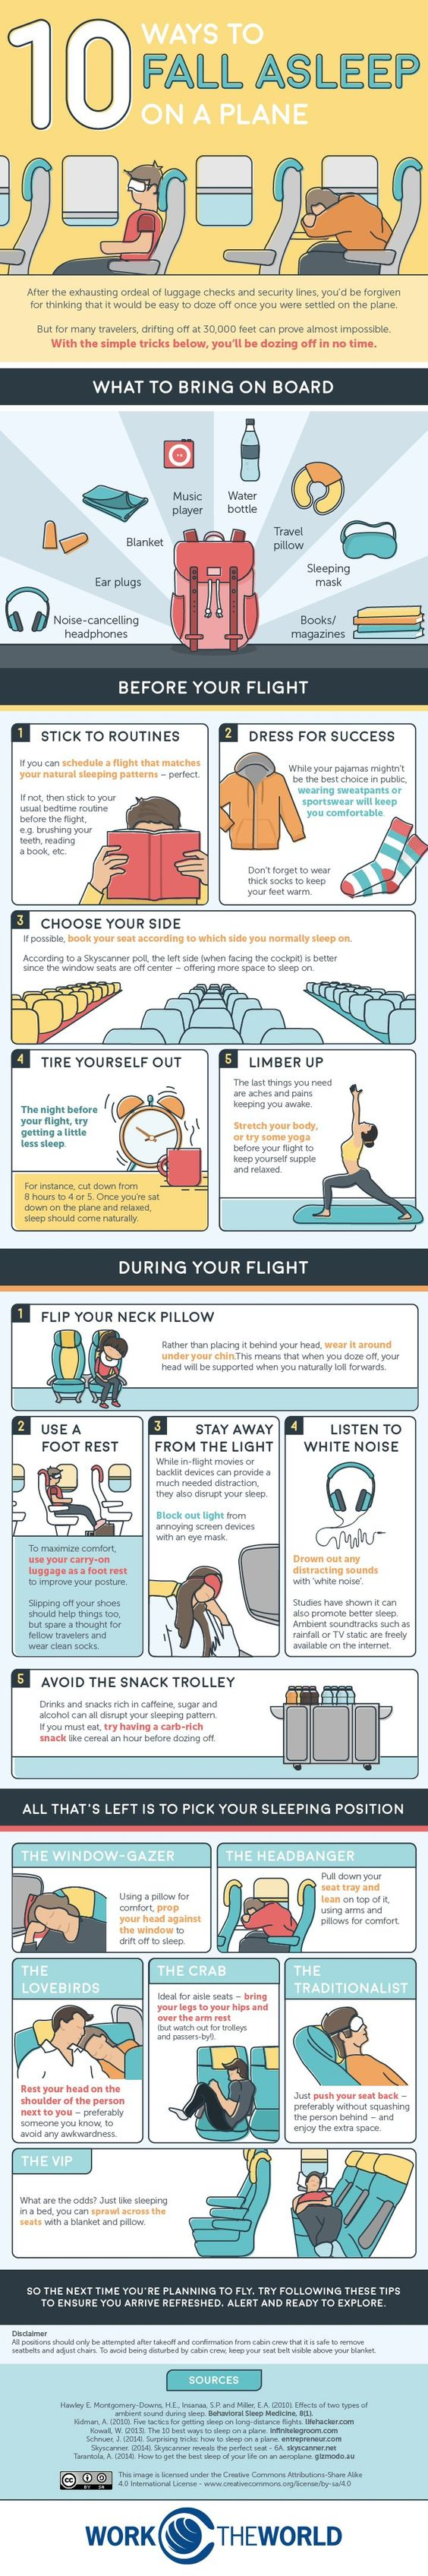 10 ways to fall asleep on a plane Know someone looking to hire top tech talent and want to have your travel paid for? Contact me, carlos@recruitingforgood.com